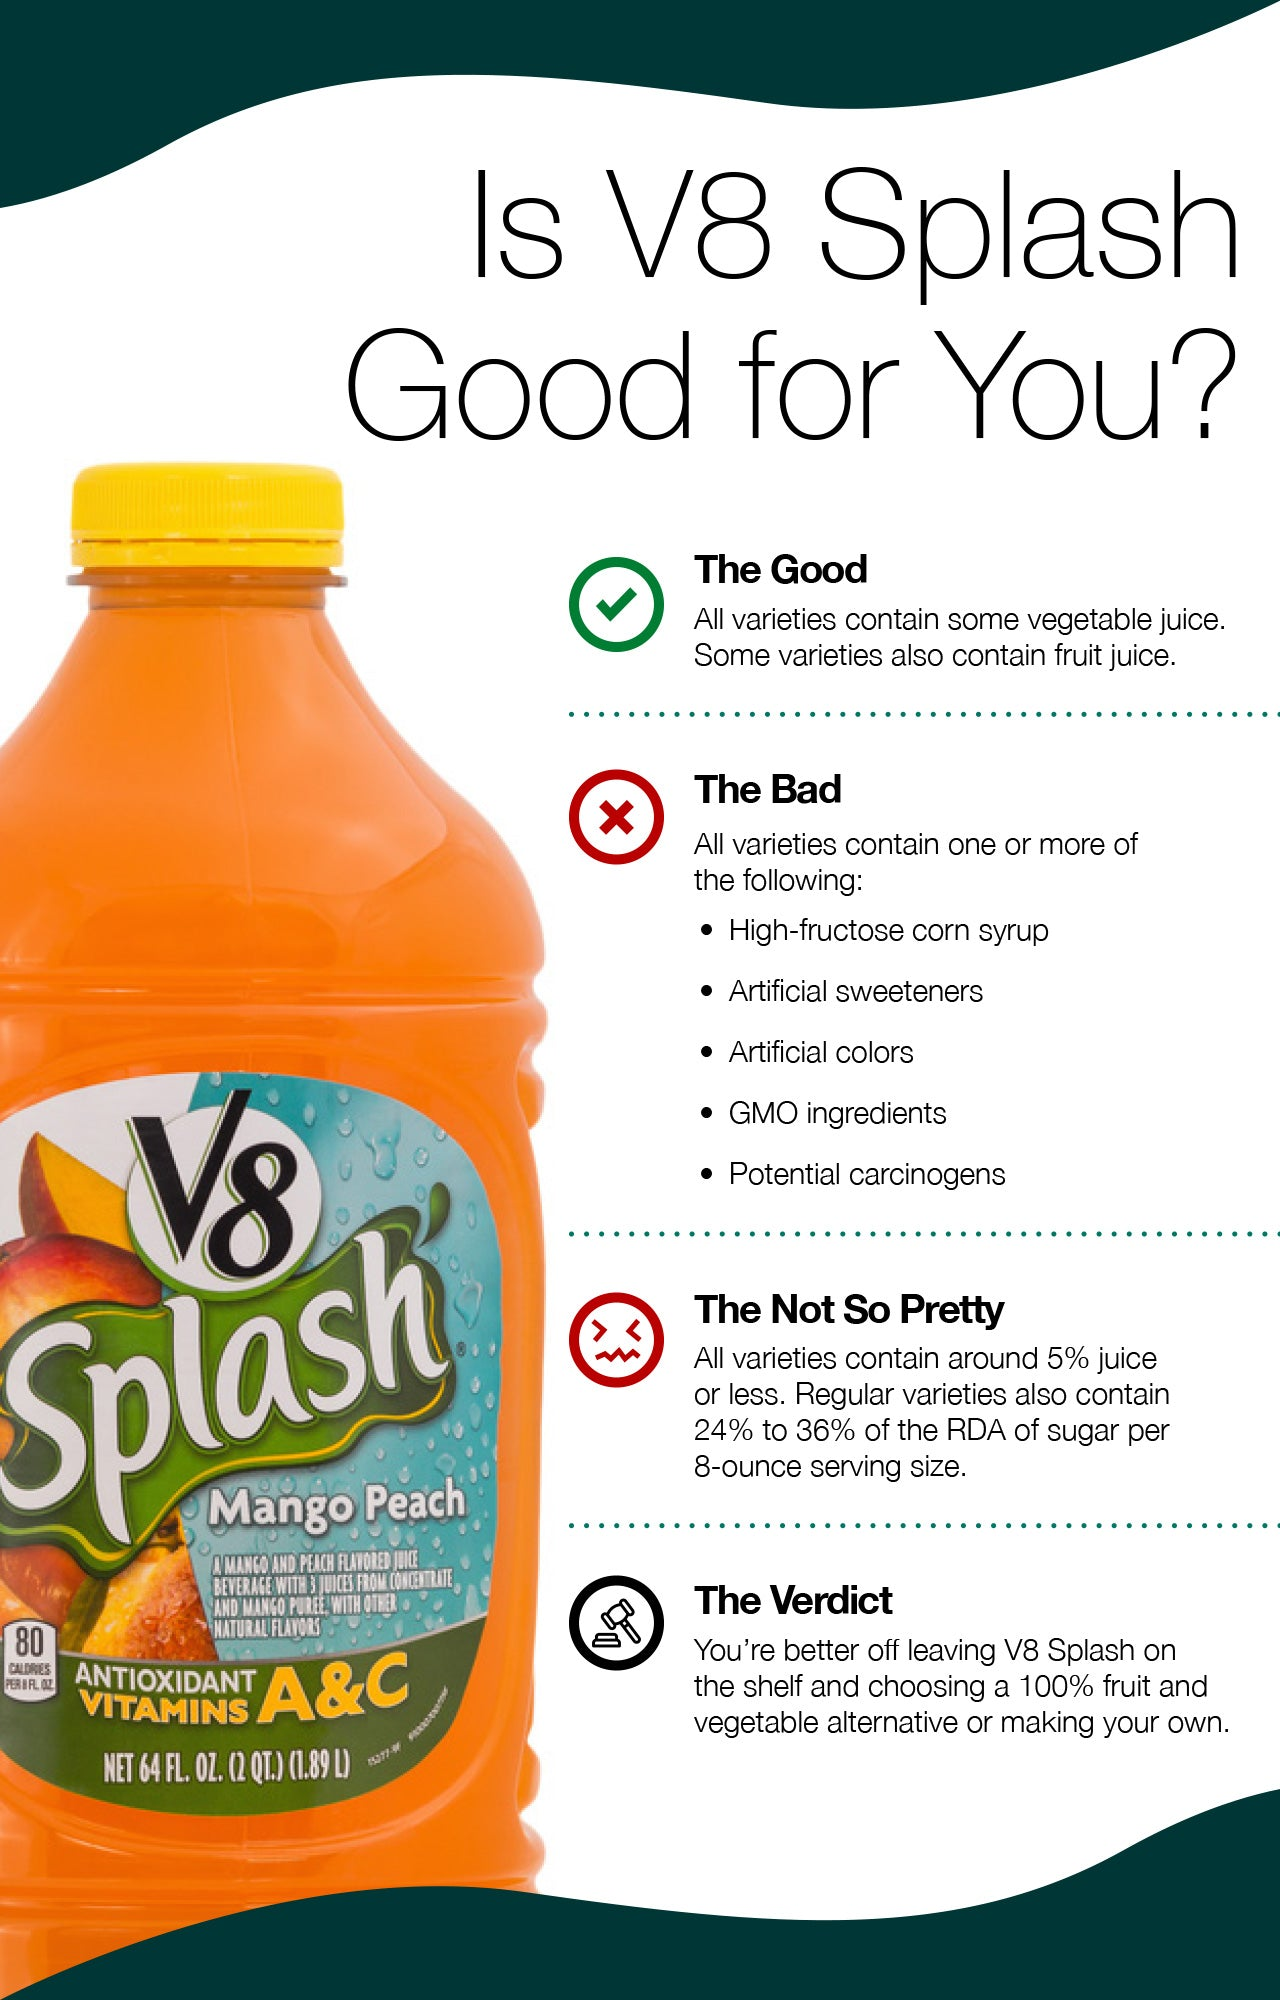 Is V8 Splash Good for You?